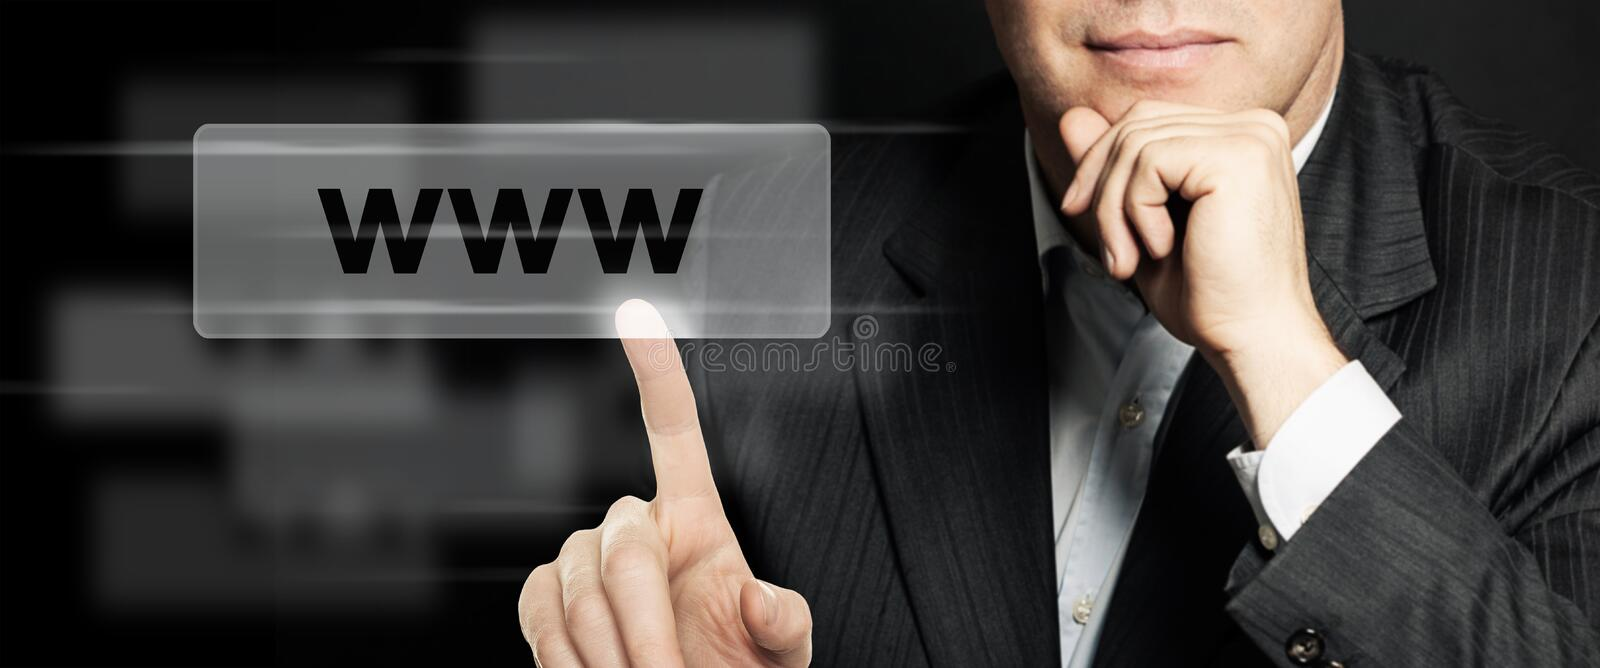 Business man pointing www address bar. Seo, internet marketing and advertising marketing concept. Human Hands Closeup royalty free stock images